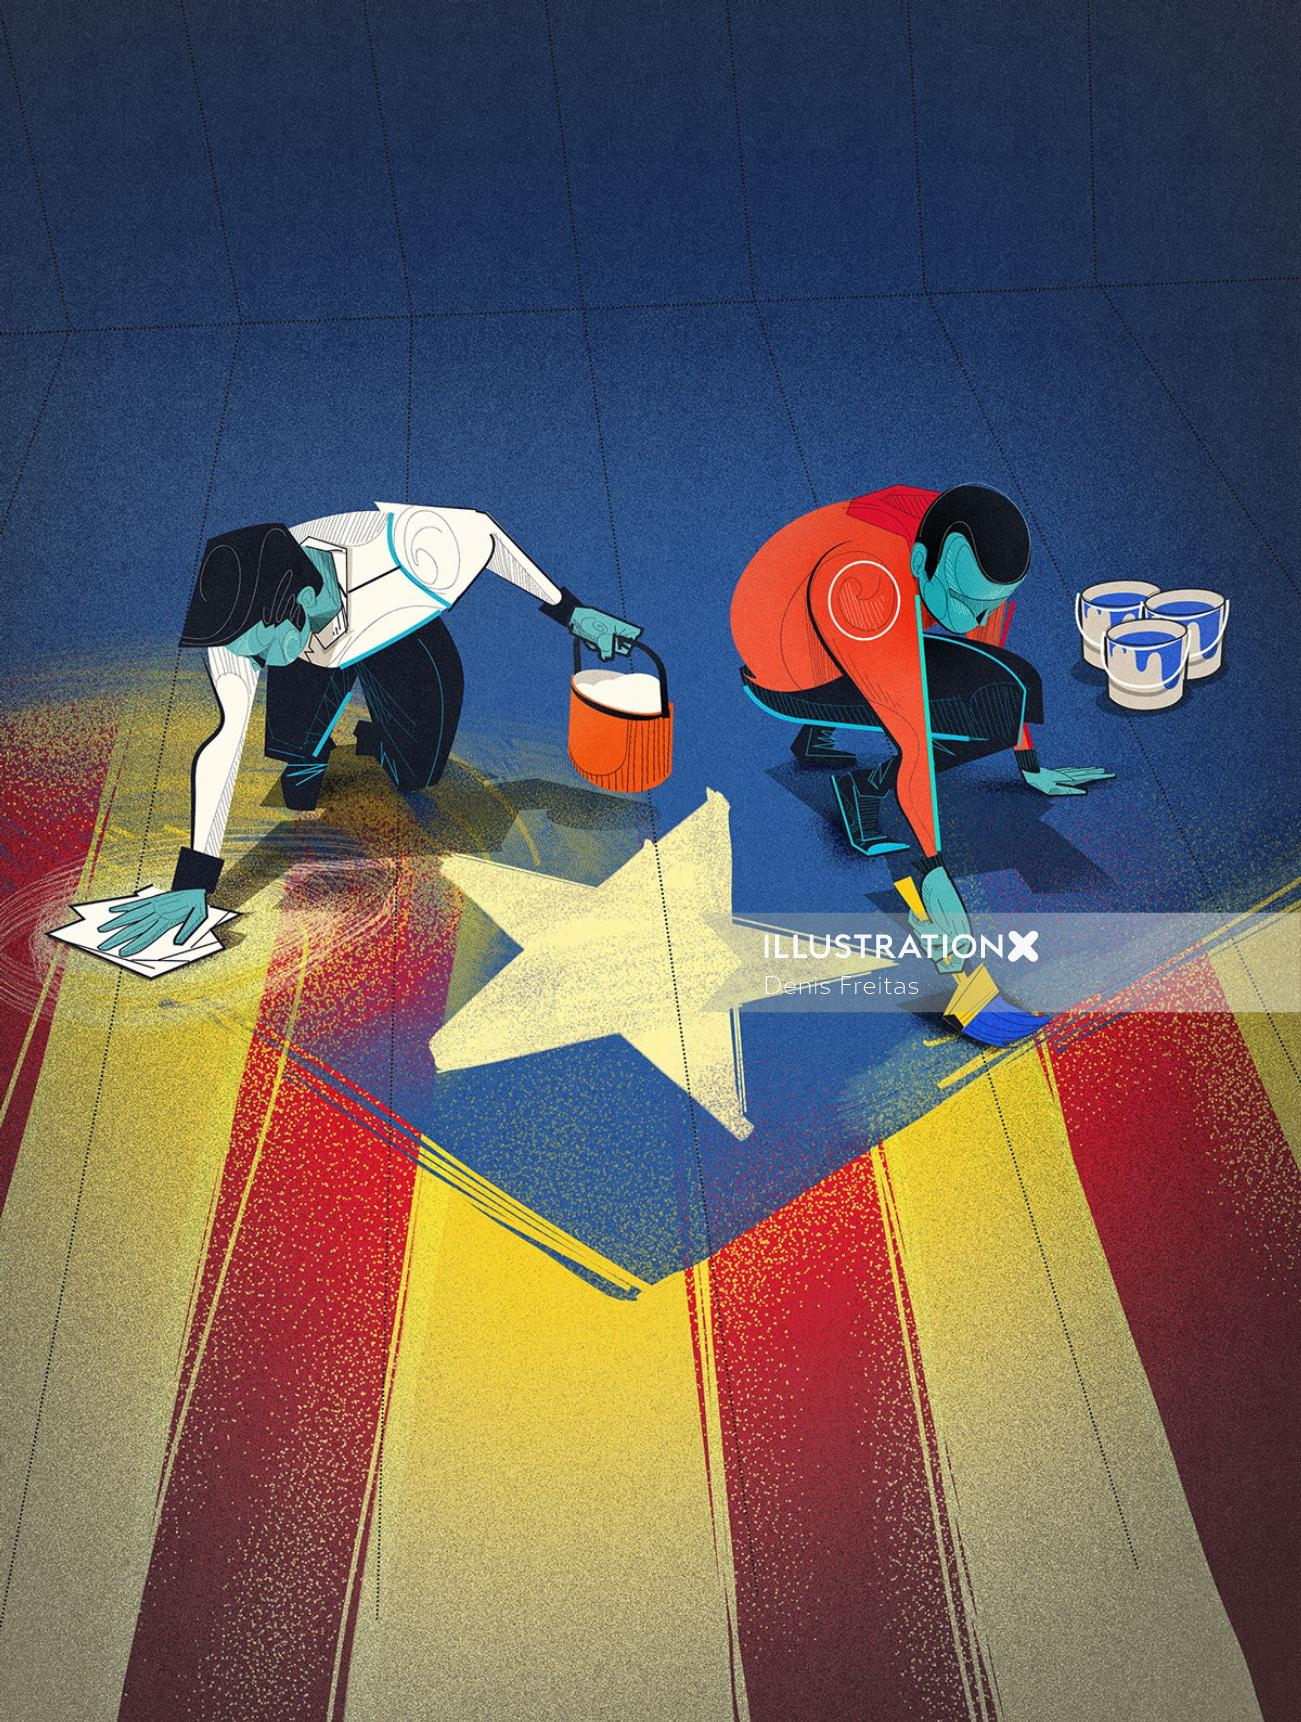 catalonia's independence process illustration